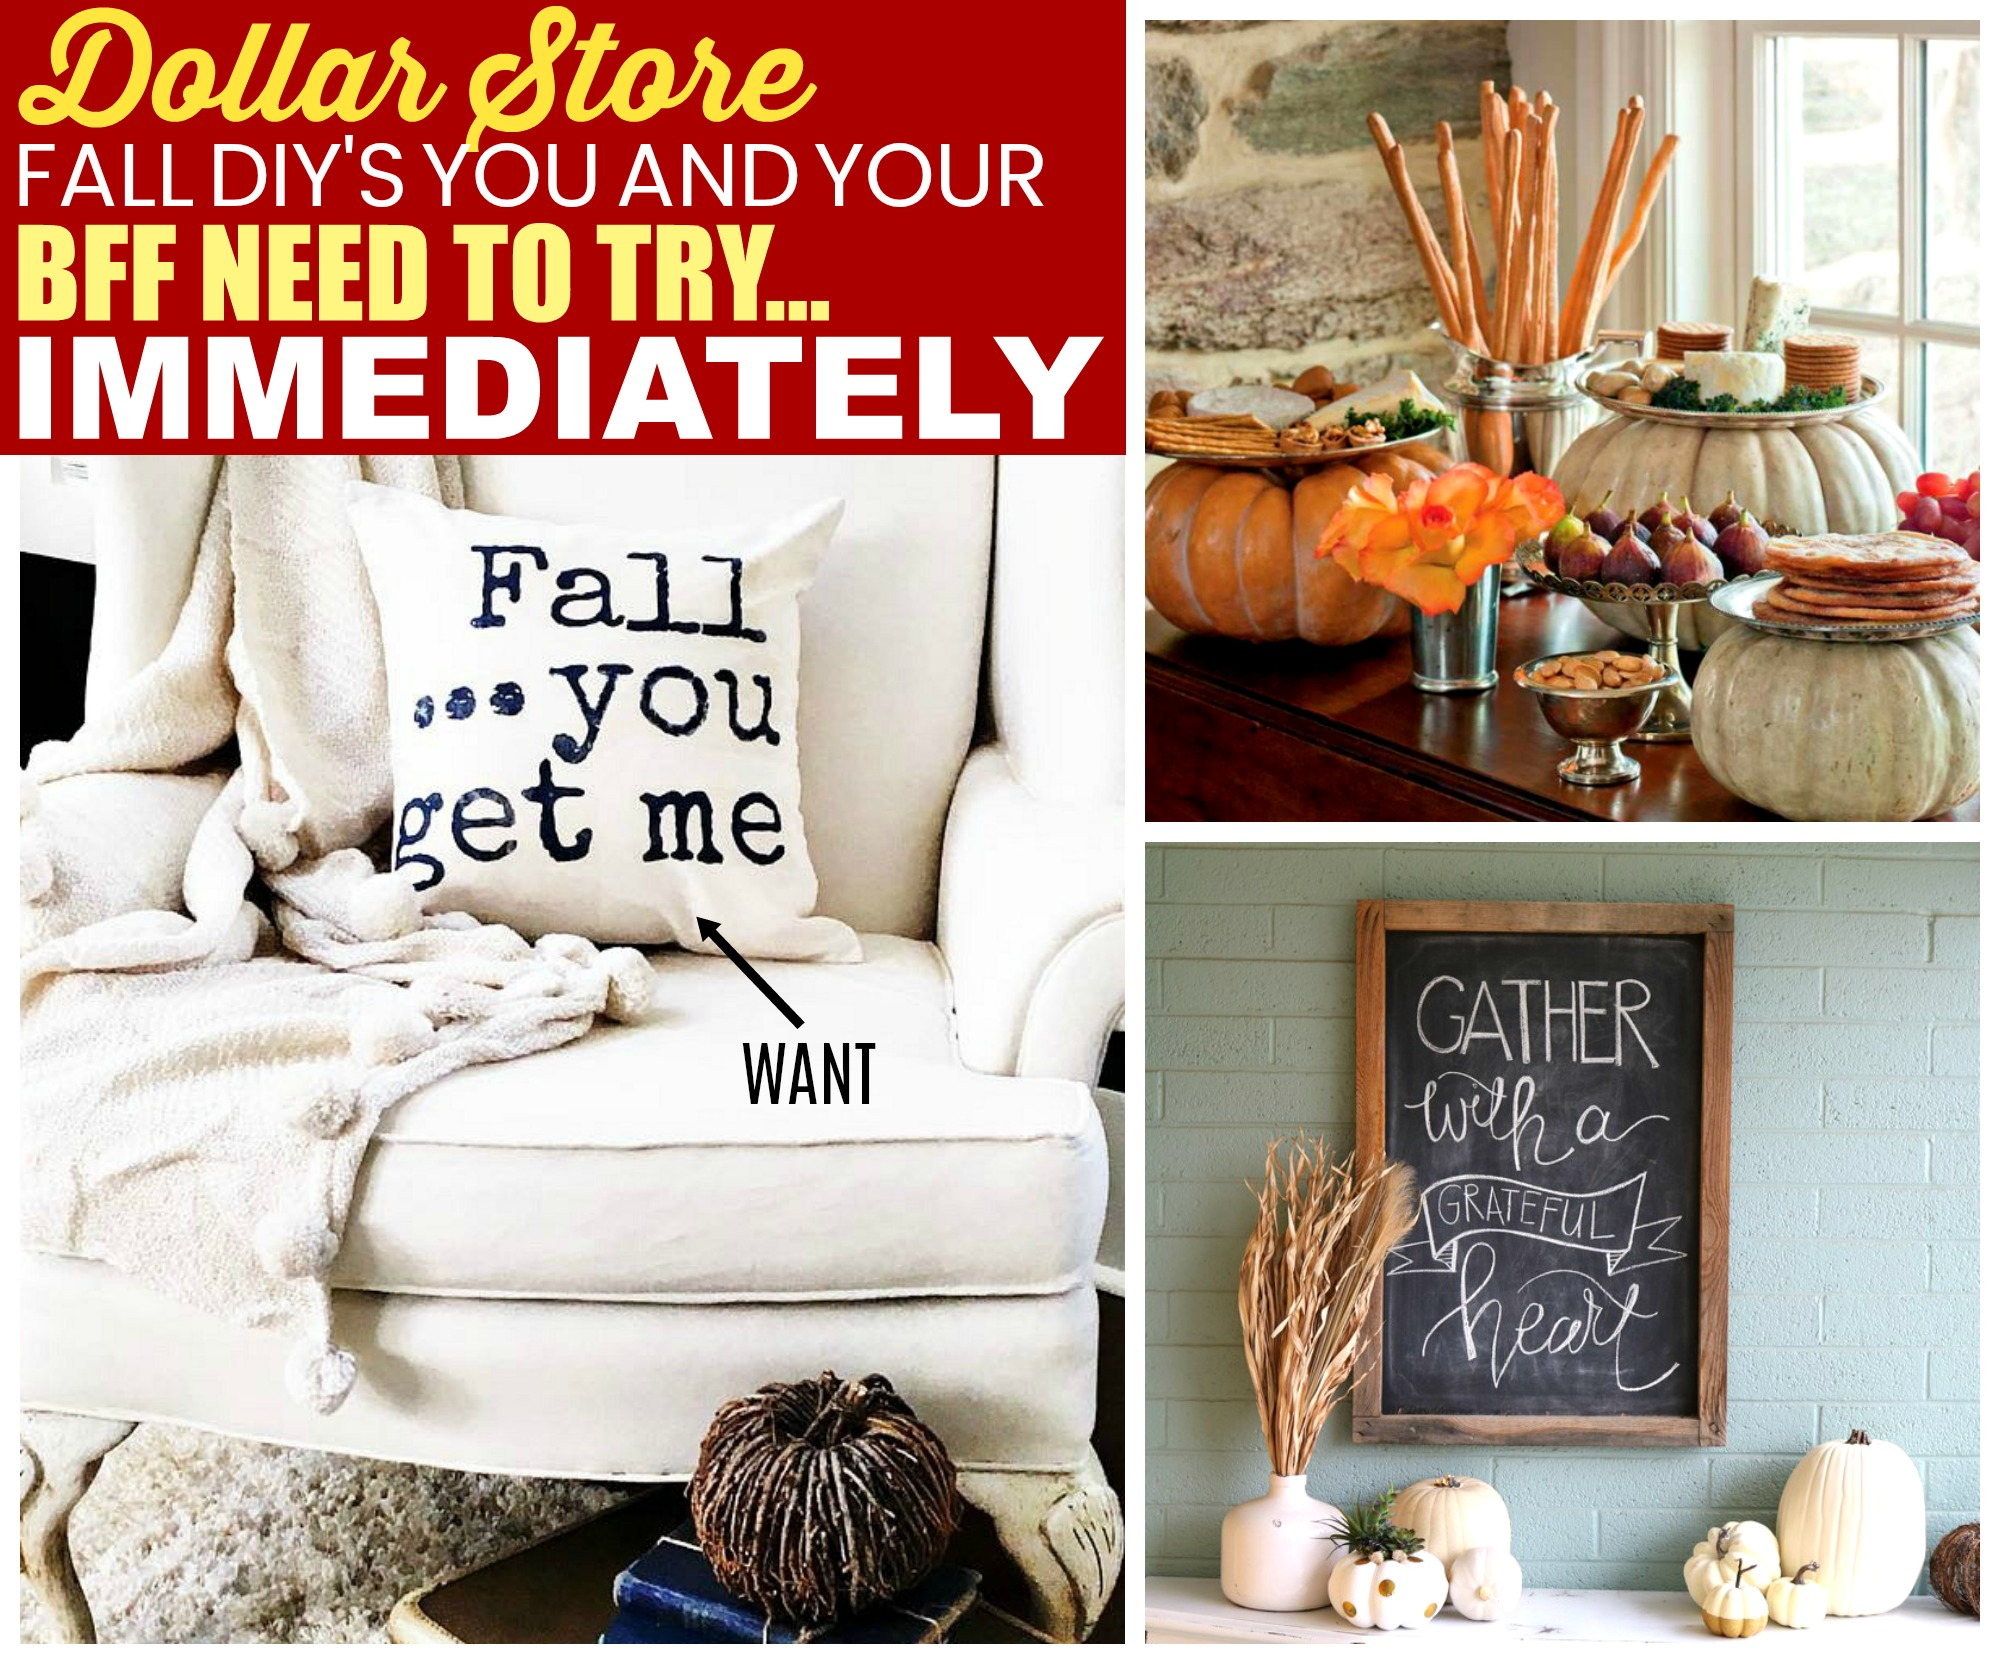 10 Diy Fall Decor Ideas You Can Do With Items From The Dollar Store